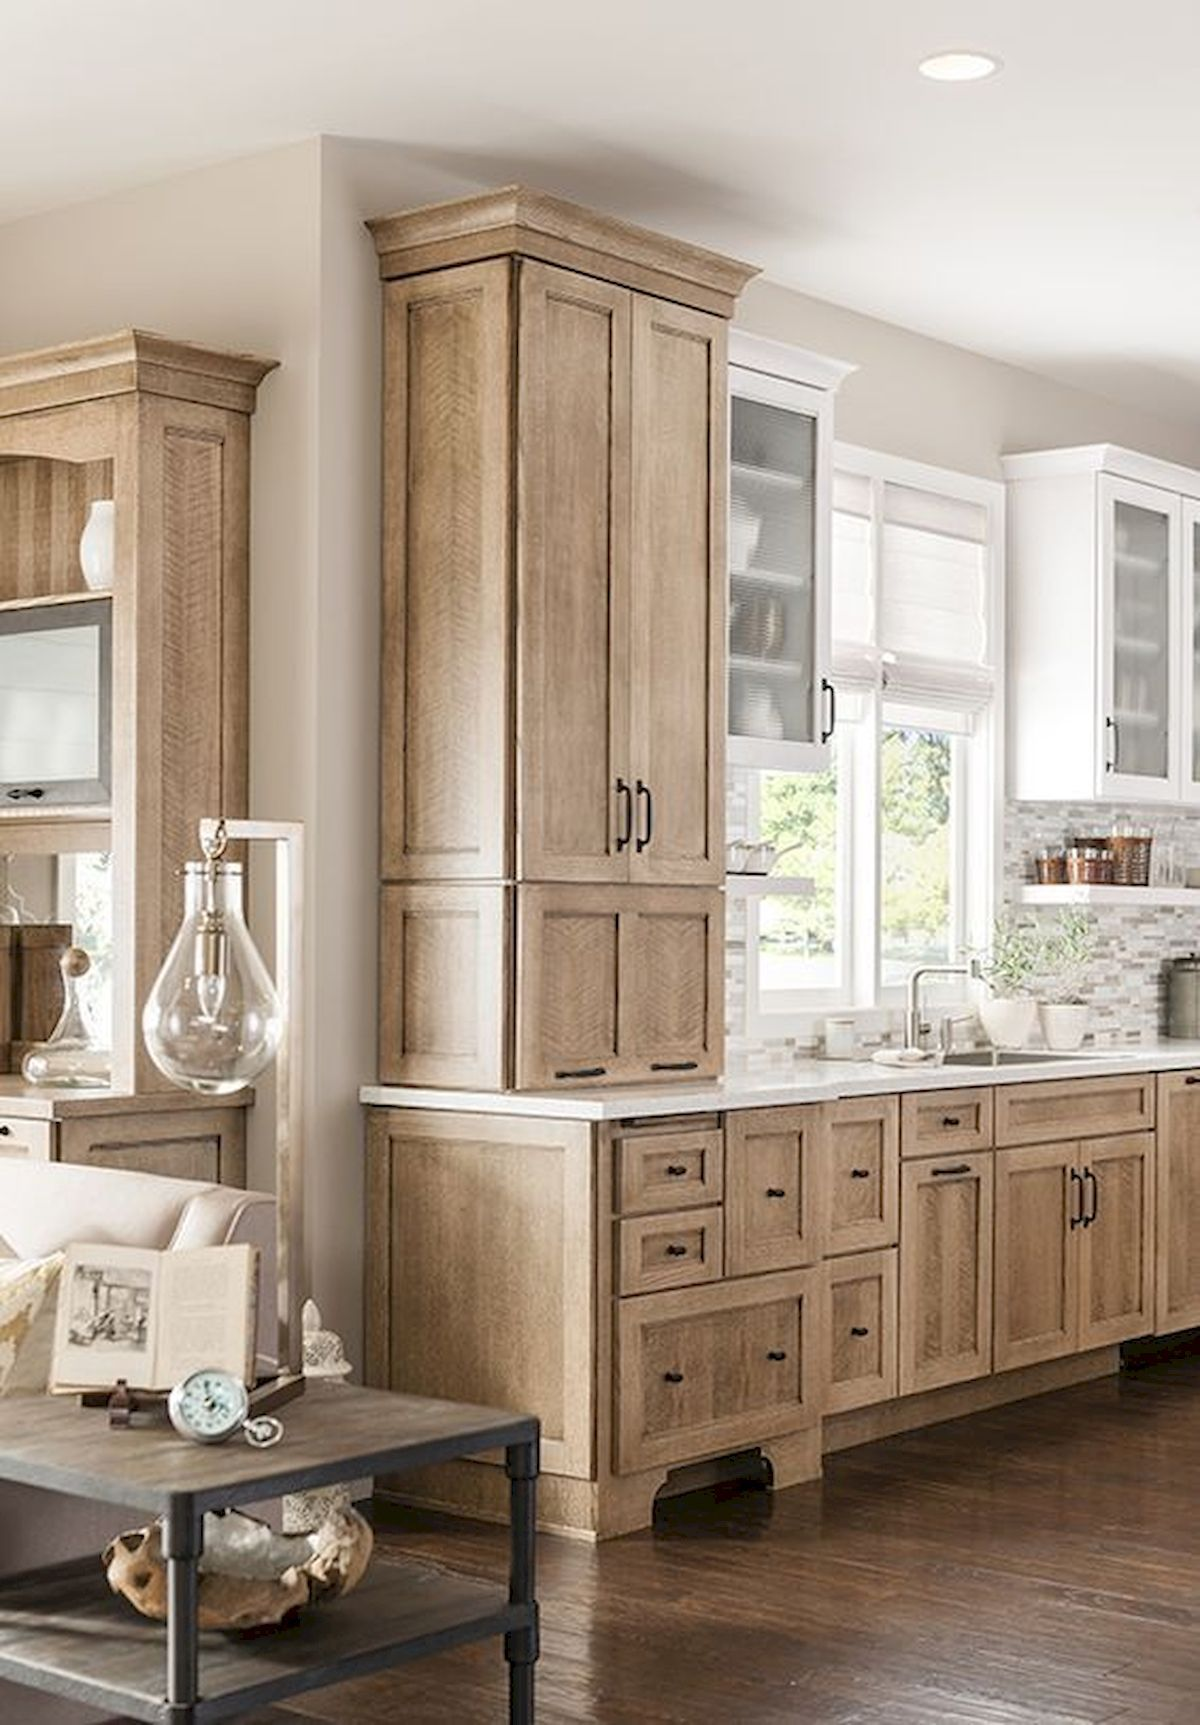 Kitchen Cabinets Design Ideas For A Great Looking Kitchen ...